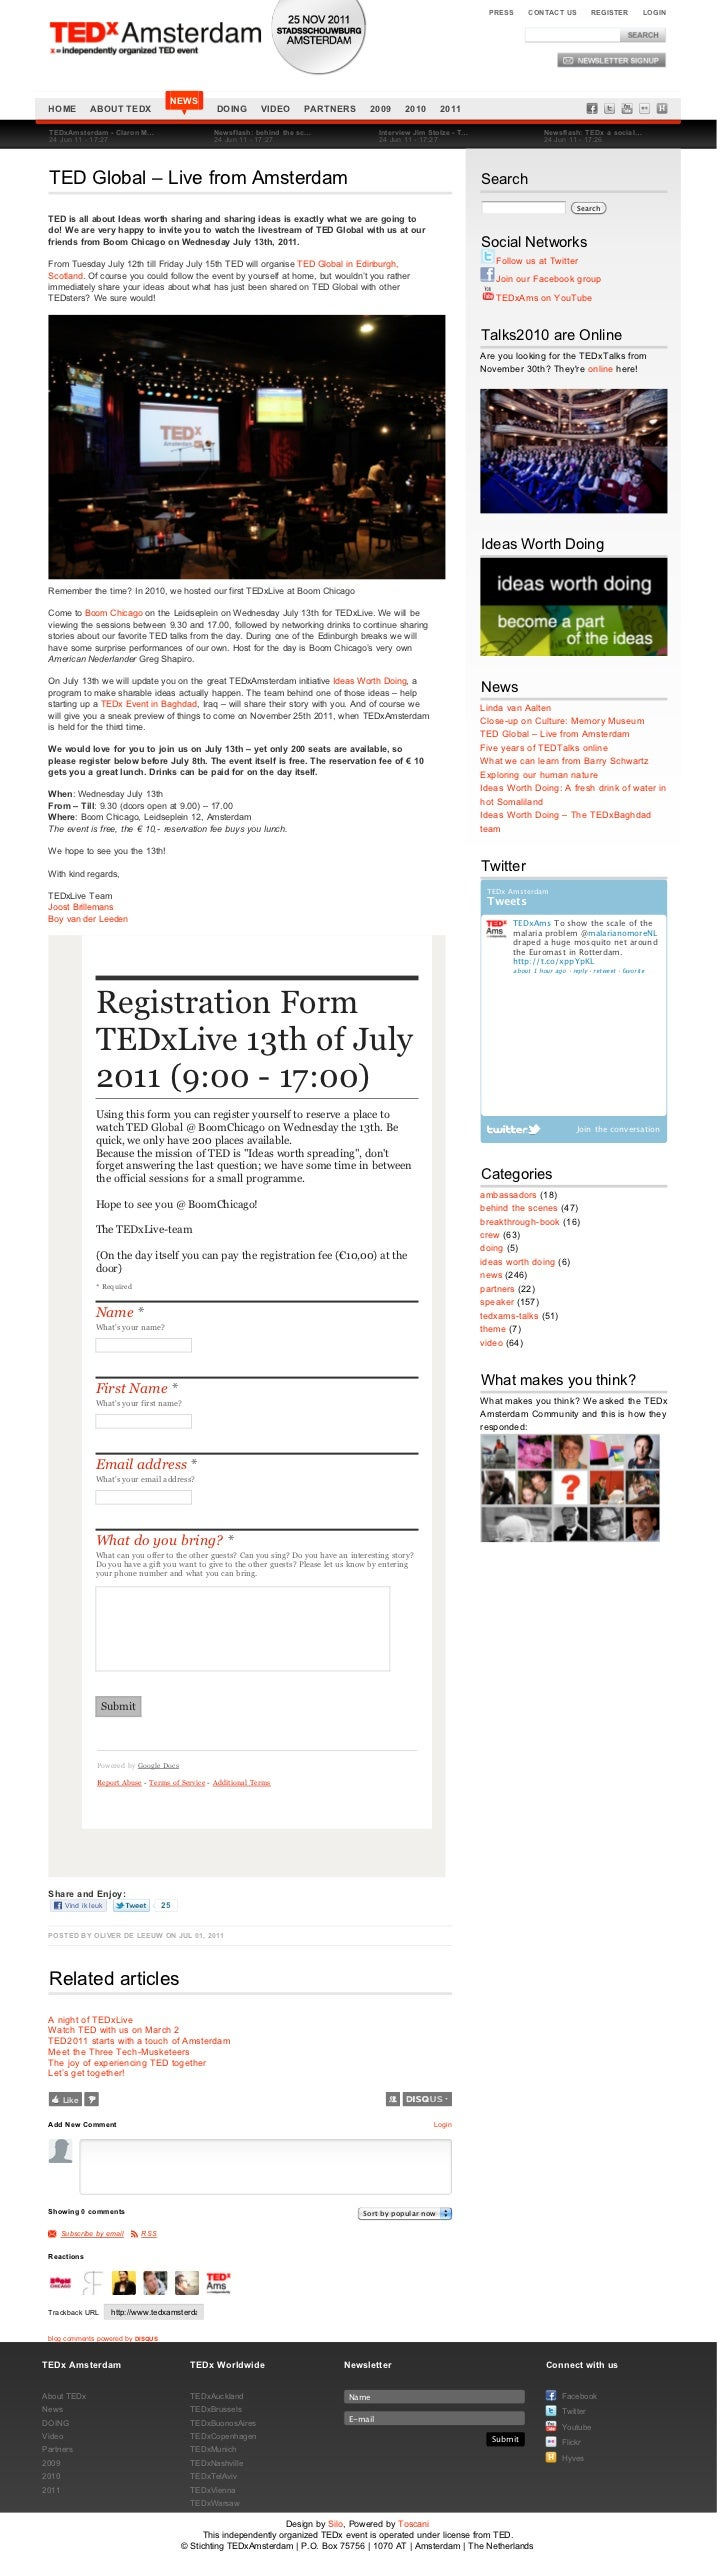 PRESS     CONTACT US           REGISTER          LOGIN                                       NEWS HOME          ABOUT TEDX...